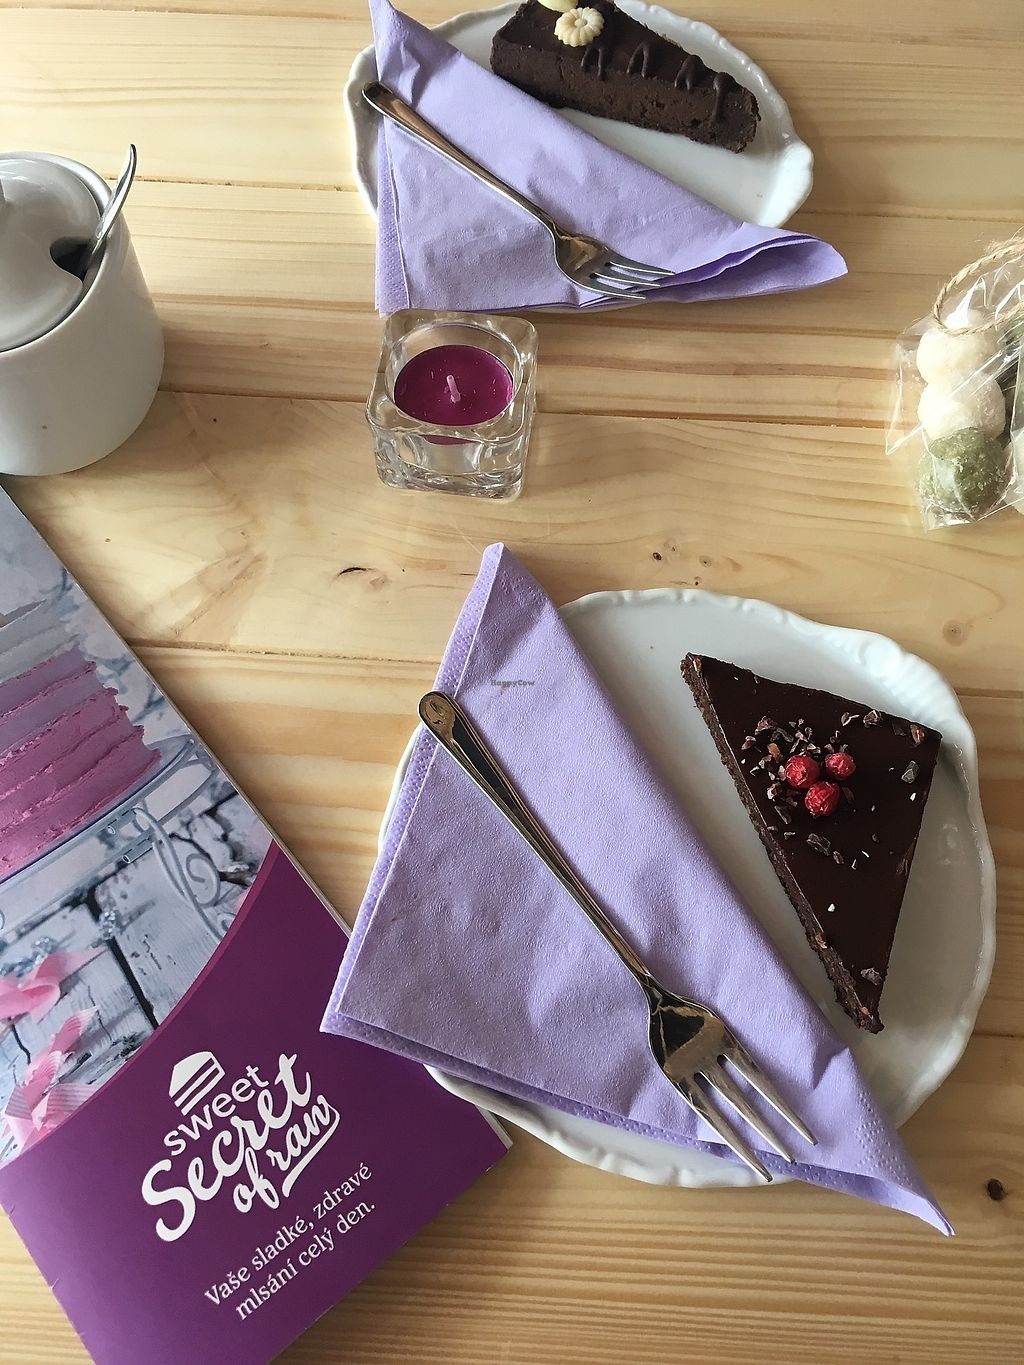 "Photo of Sweet Secret of Raw  by <a href=""/members/profile/LilianaJure%C4%8Dkov%C3%A1"">LilianaJurečková</a> <br/>Chocco chilli cake <br/> December 23, 2017  - <a href='/contact/abuse/image/93361/338502'>Report</a>"